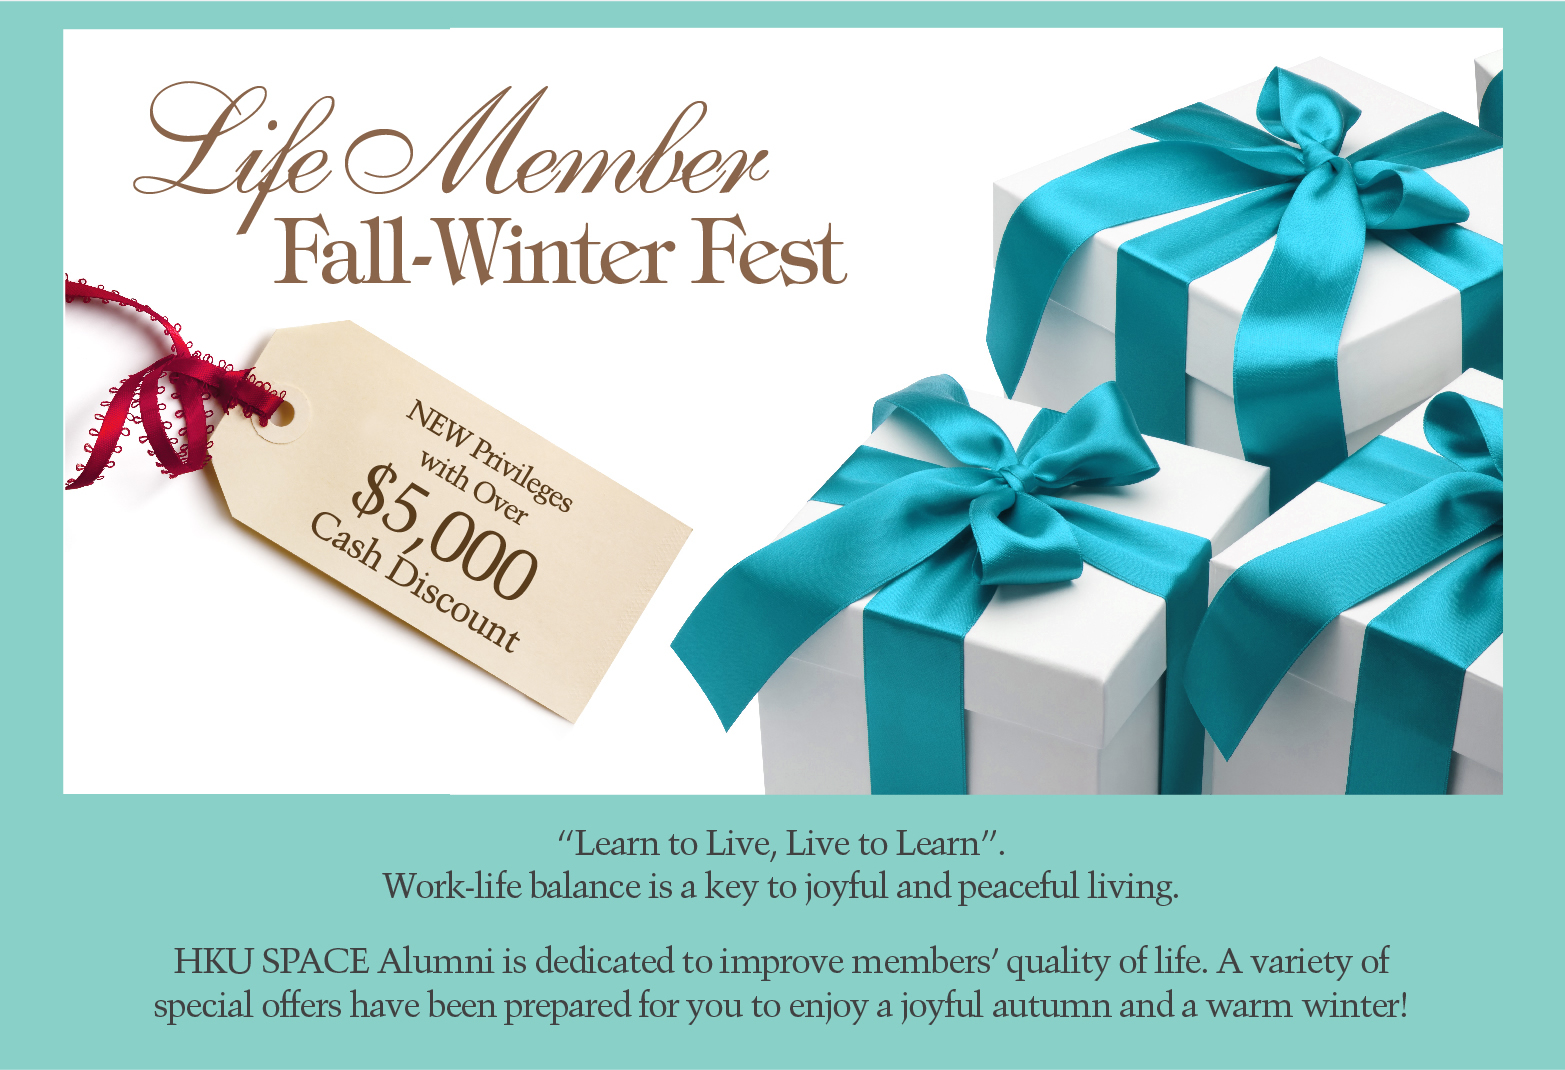 Life Member Fall-Winter Fest